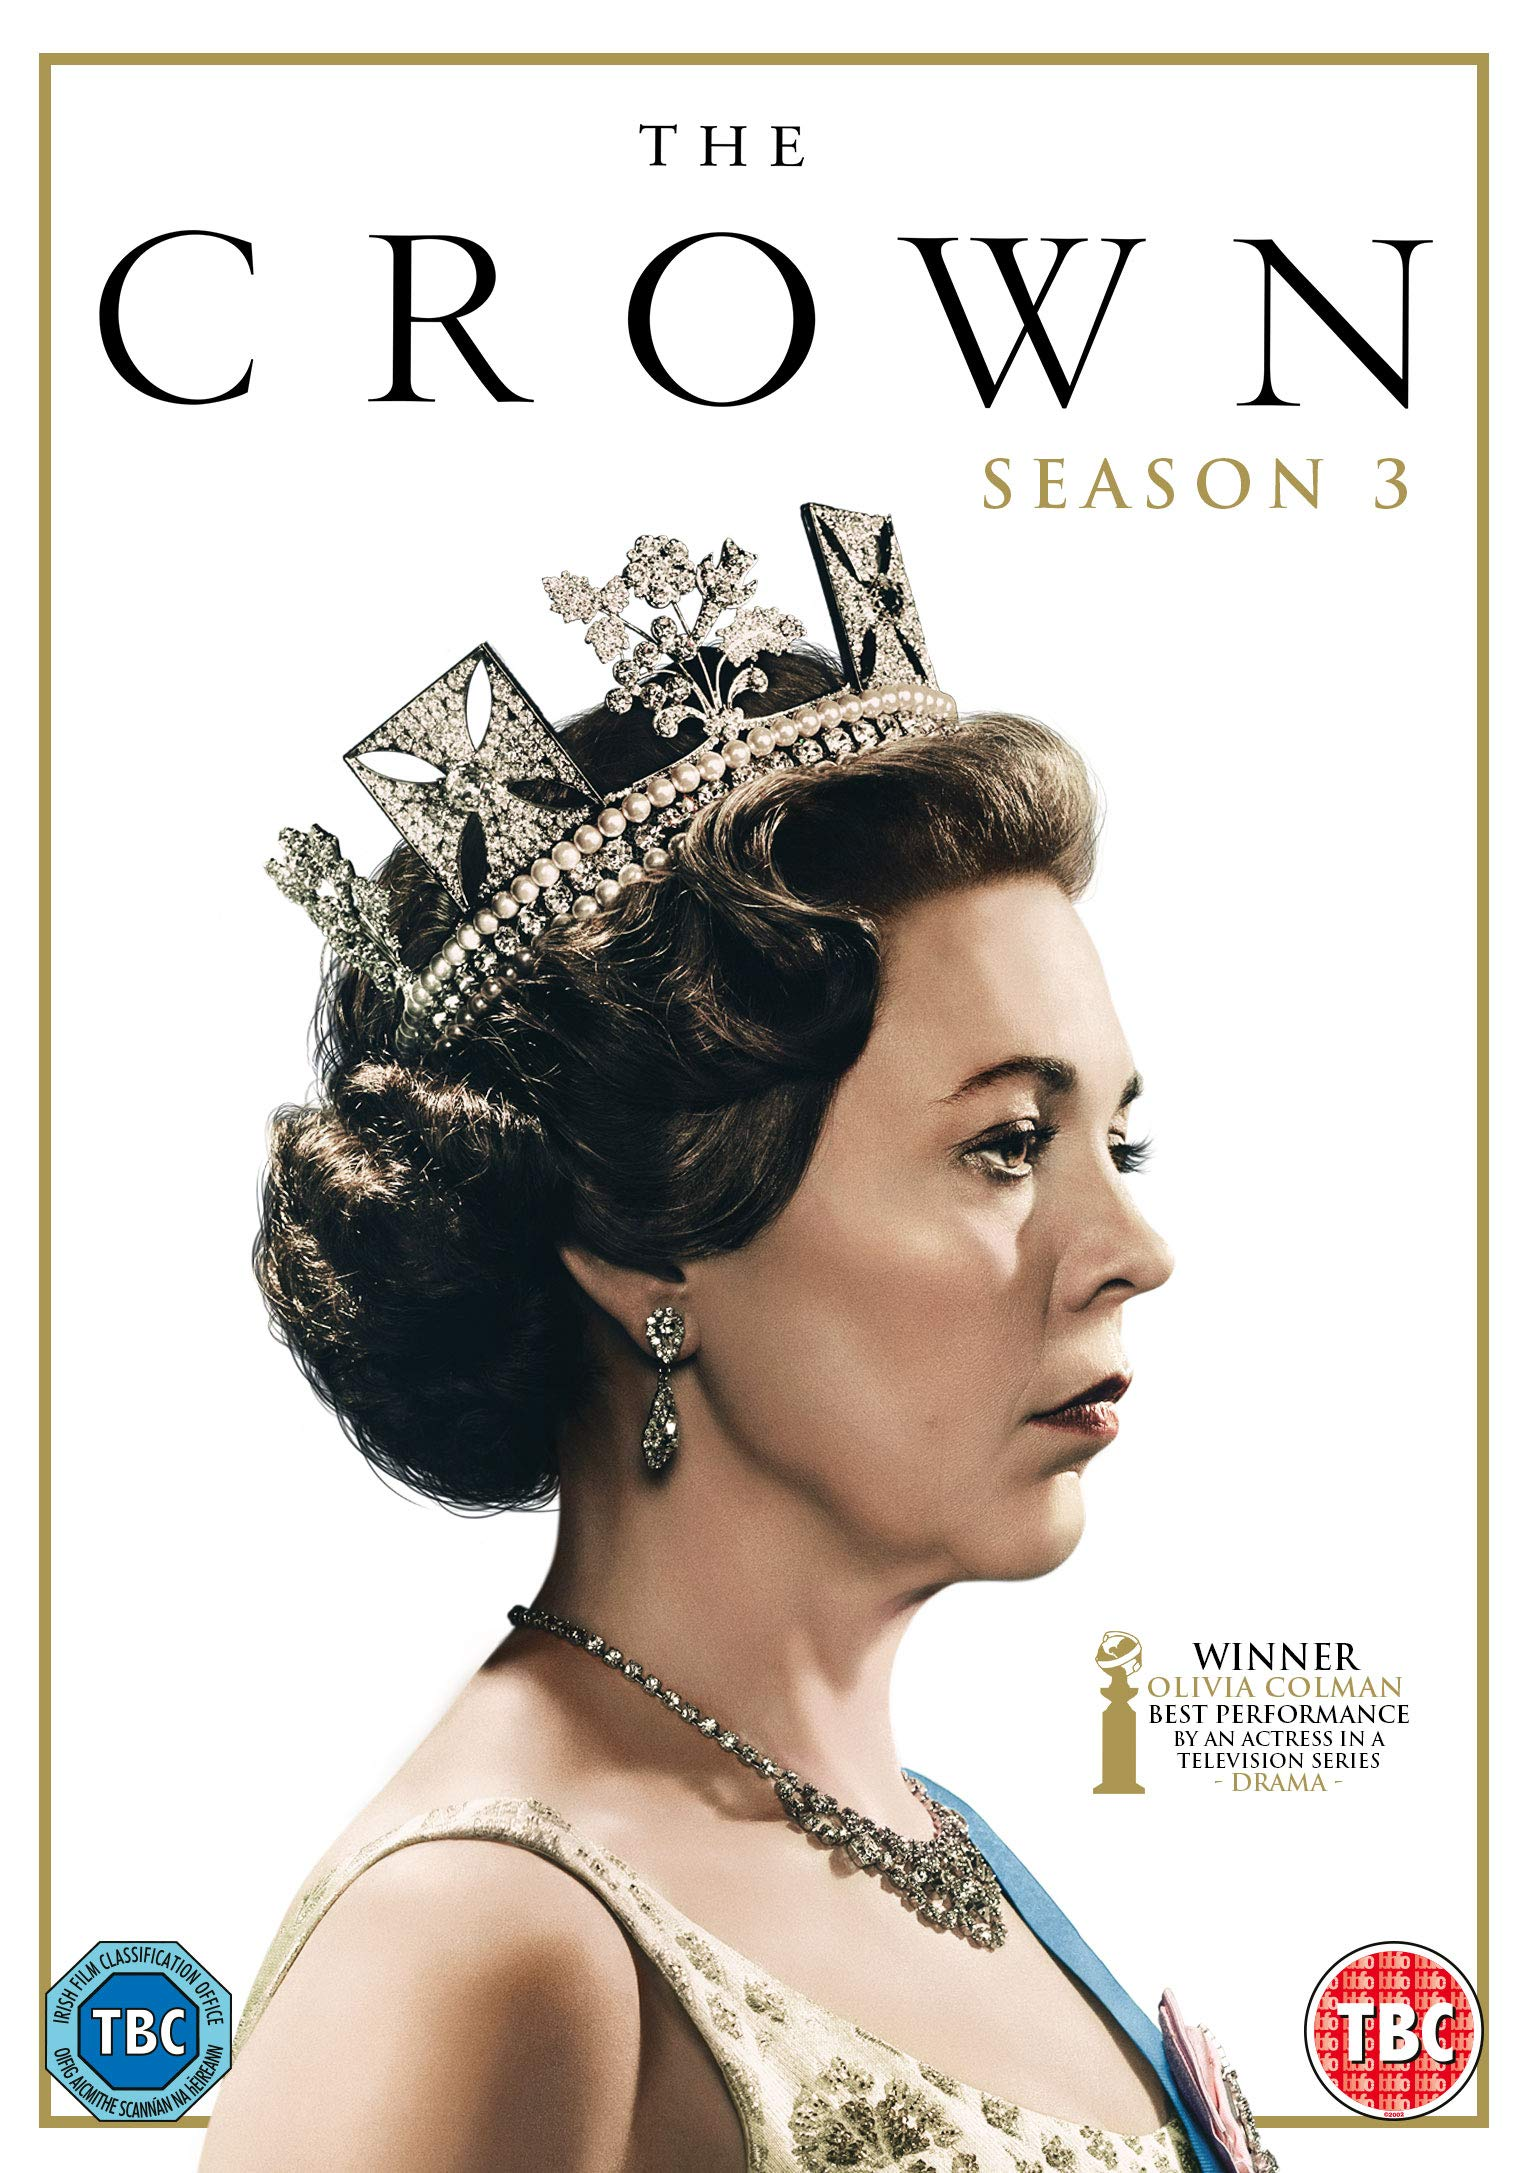 The Crown Season 03 Dvd 2020 Amazon Co Uk Olivia Colman Tobias Menzies Olivia Colman Tobias Menzies Oona Obeirn Michael Casey Andy Stebbing Martin Harrison Dvd Blu Ray